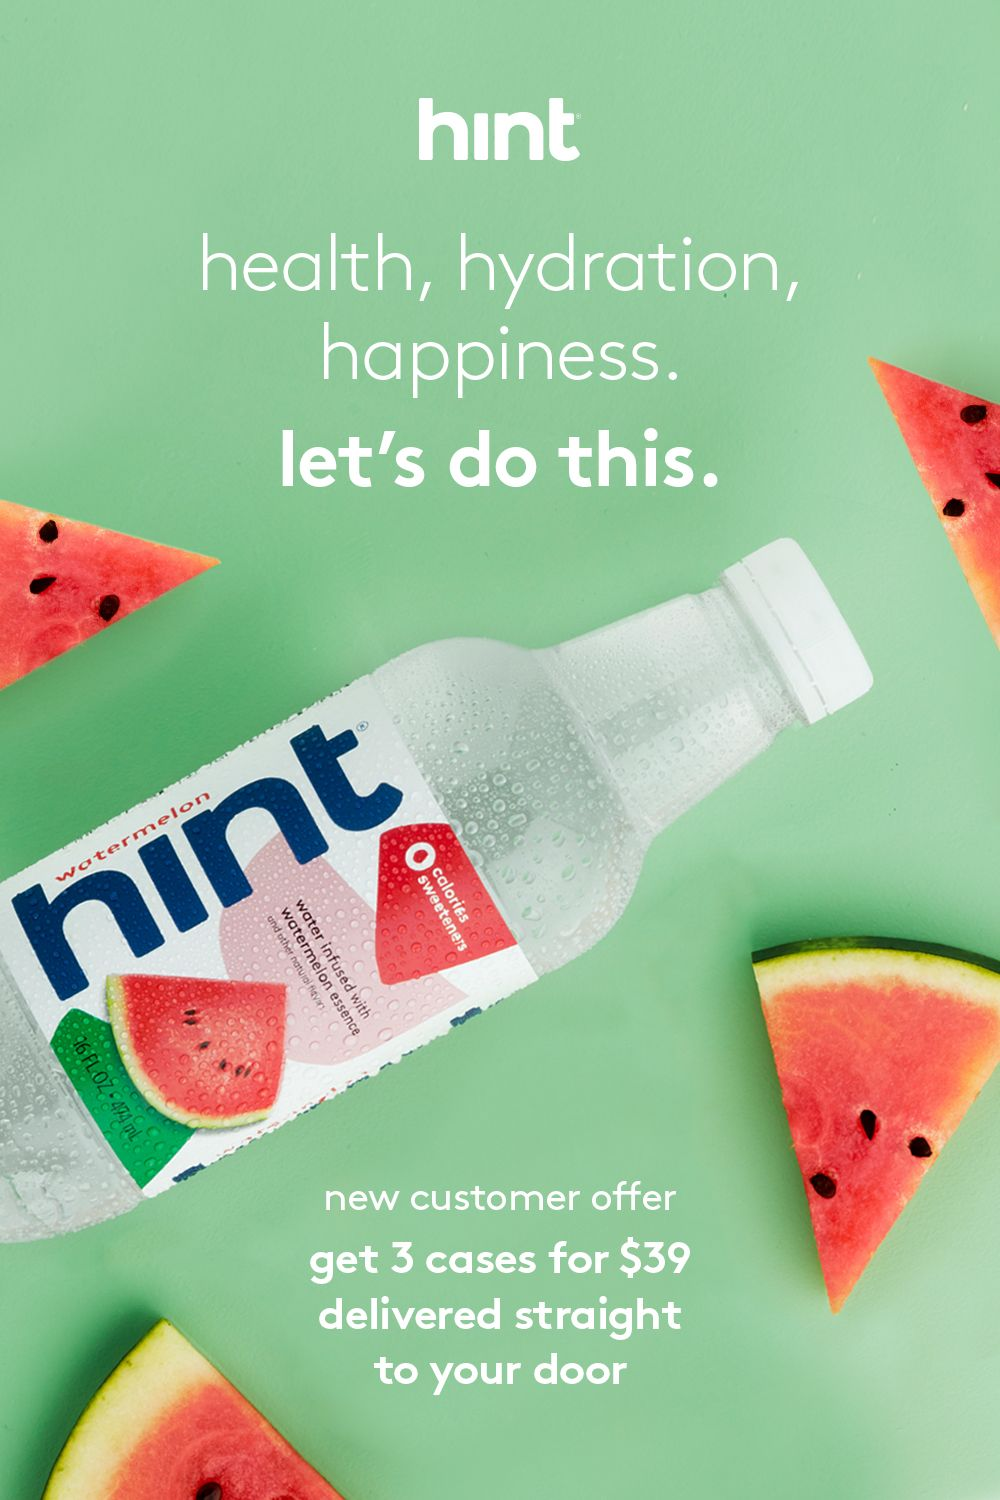 Hint water contains only water and delicious fruit flavors